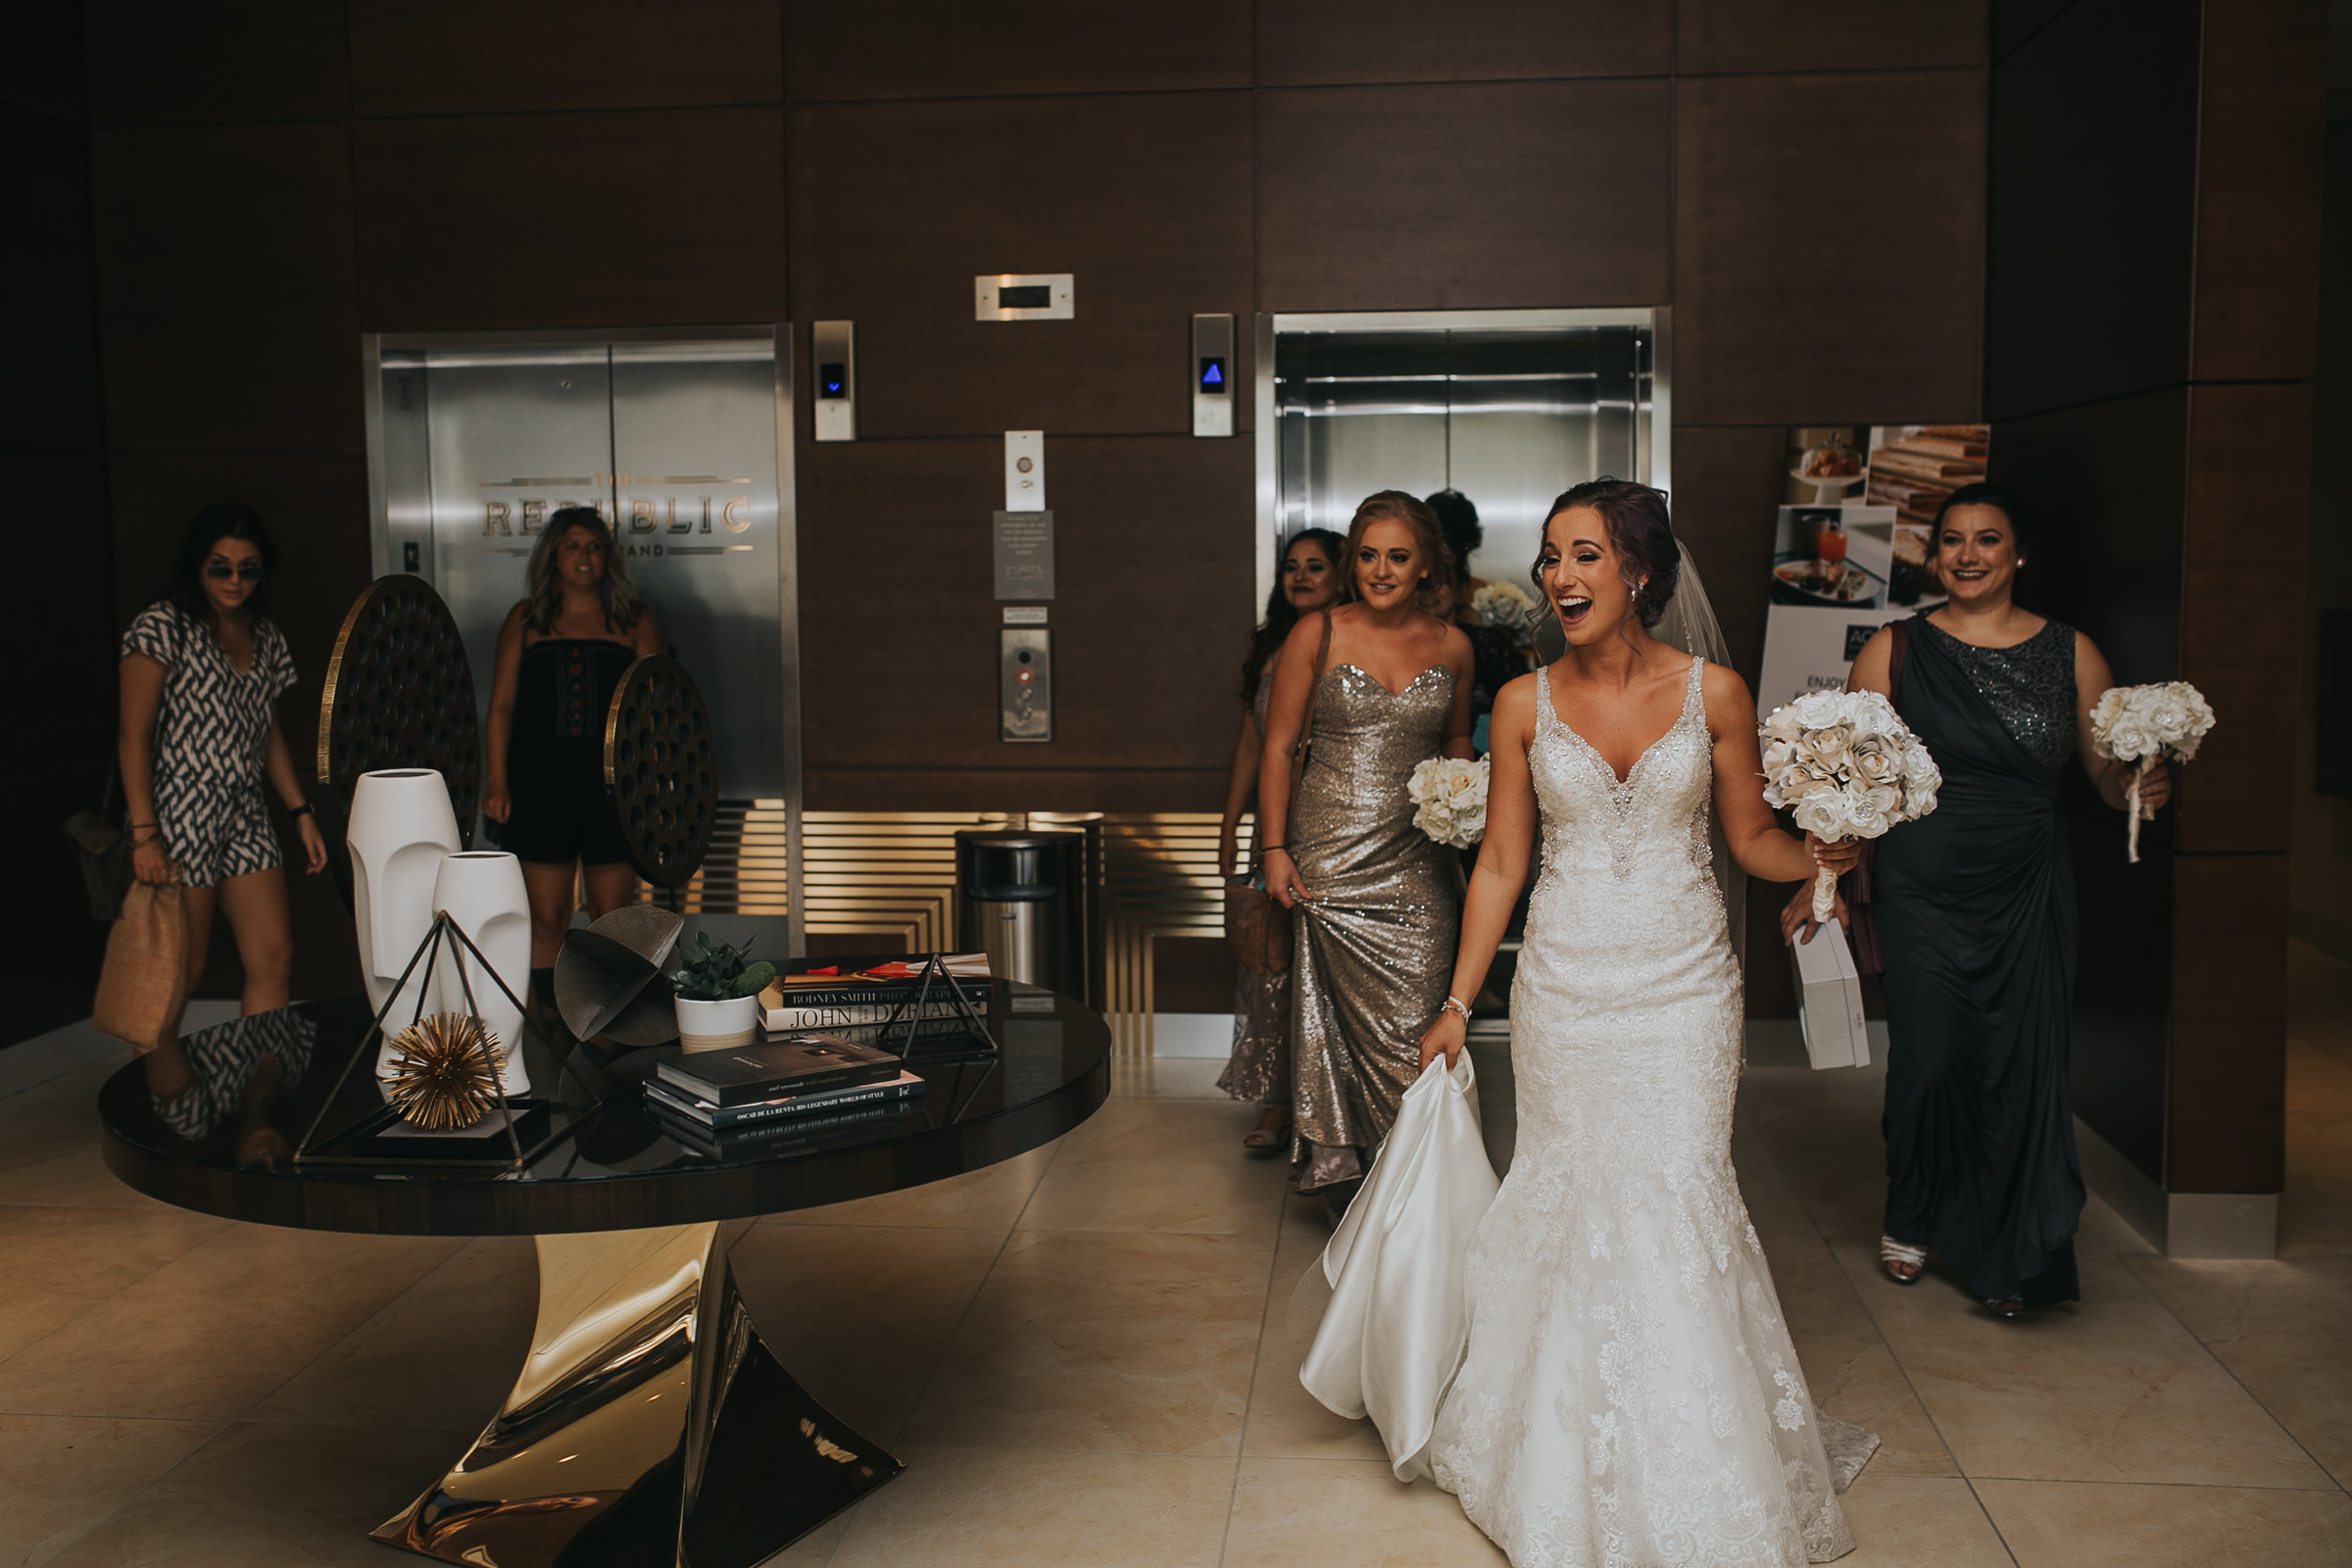 bridesmaids-and-bride-coming-off-elevators-in-lobby-desmoines-iowa-ac-hotel-raelyn-ramey-photography.jpg